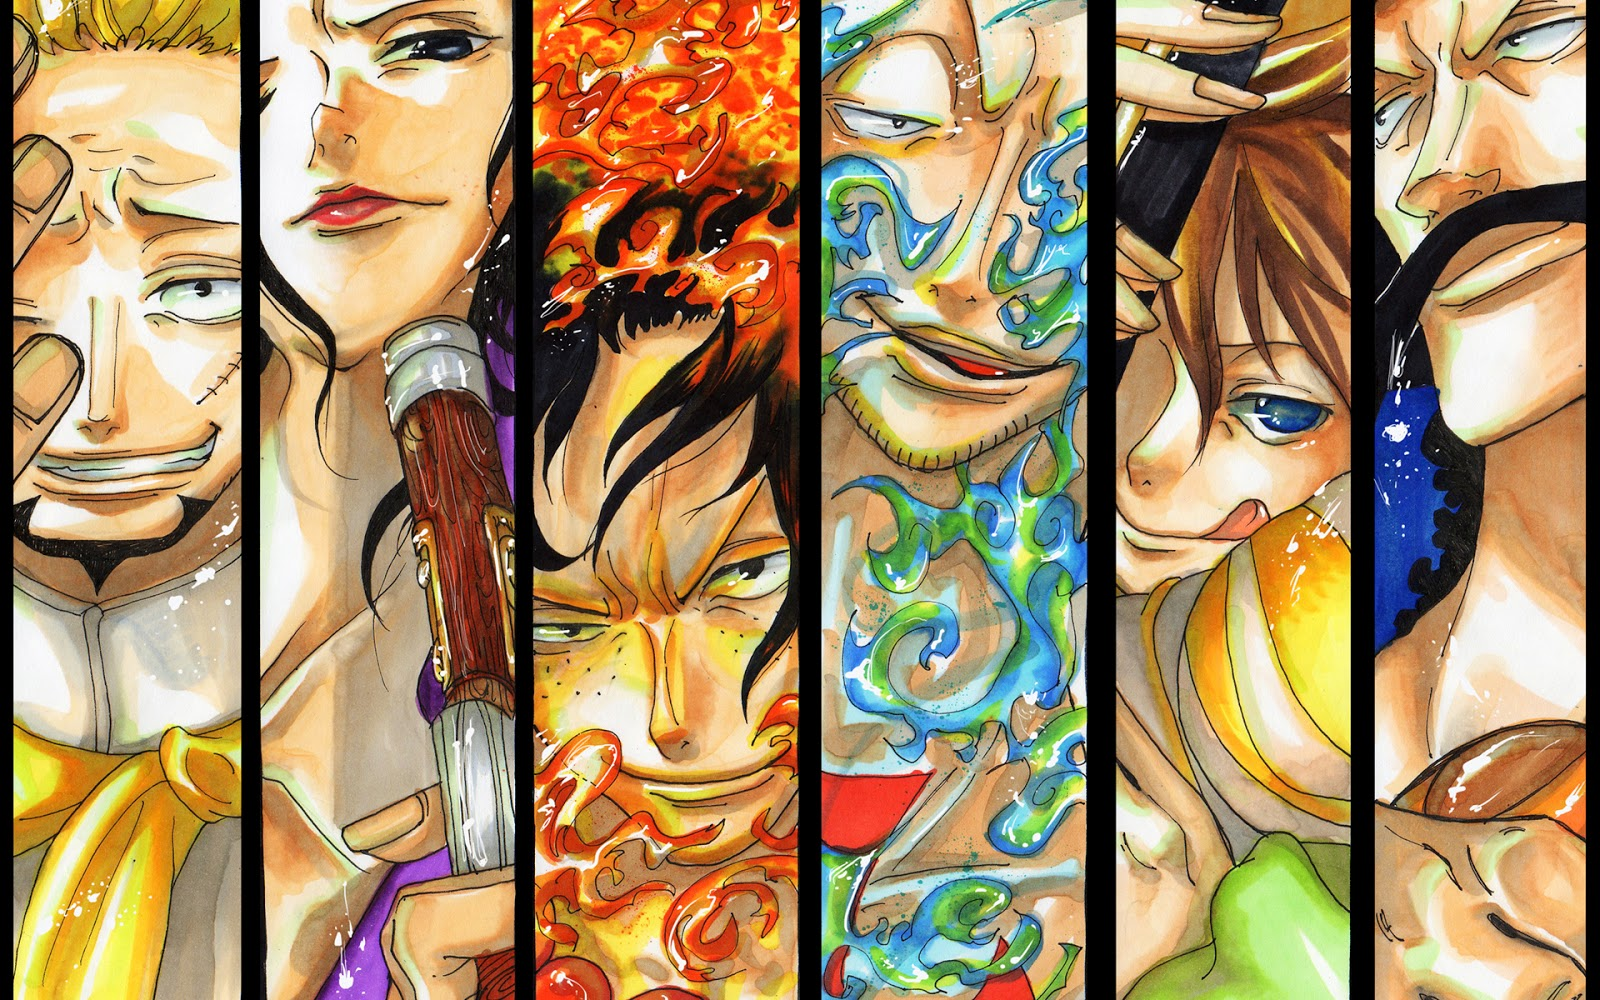 whitebeard pirates one piece hd wallpaper image picture 1600x1000